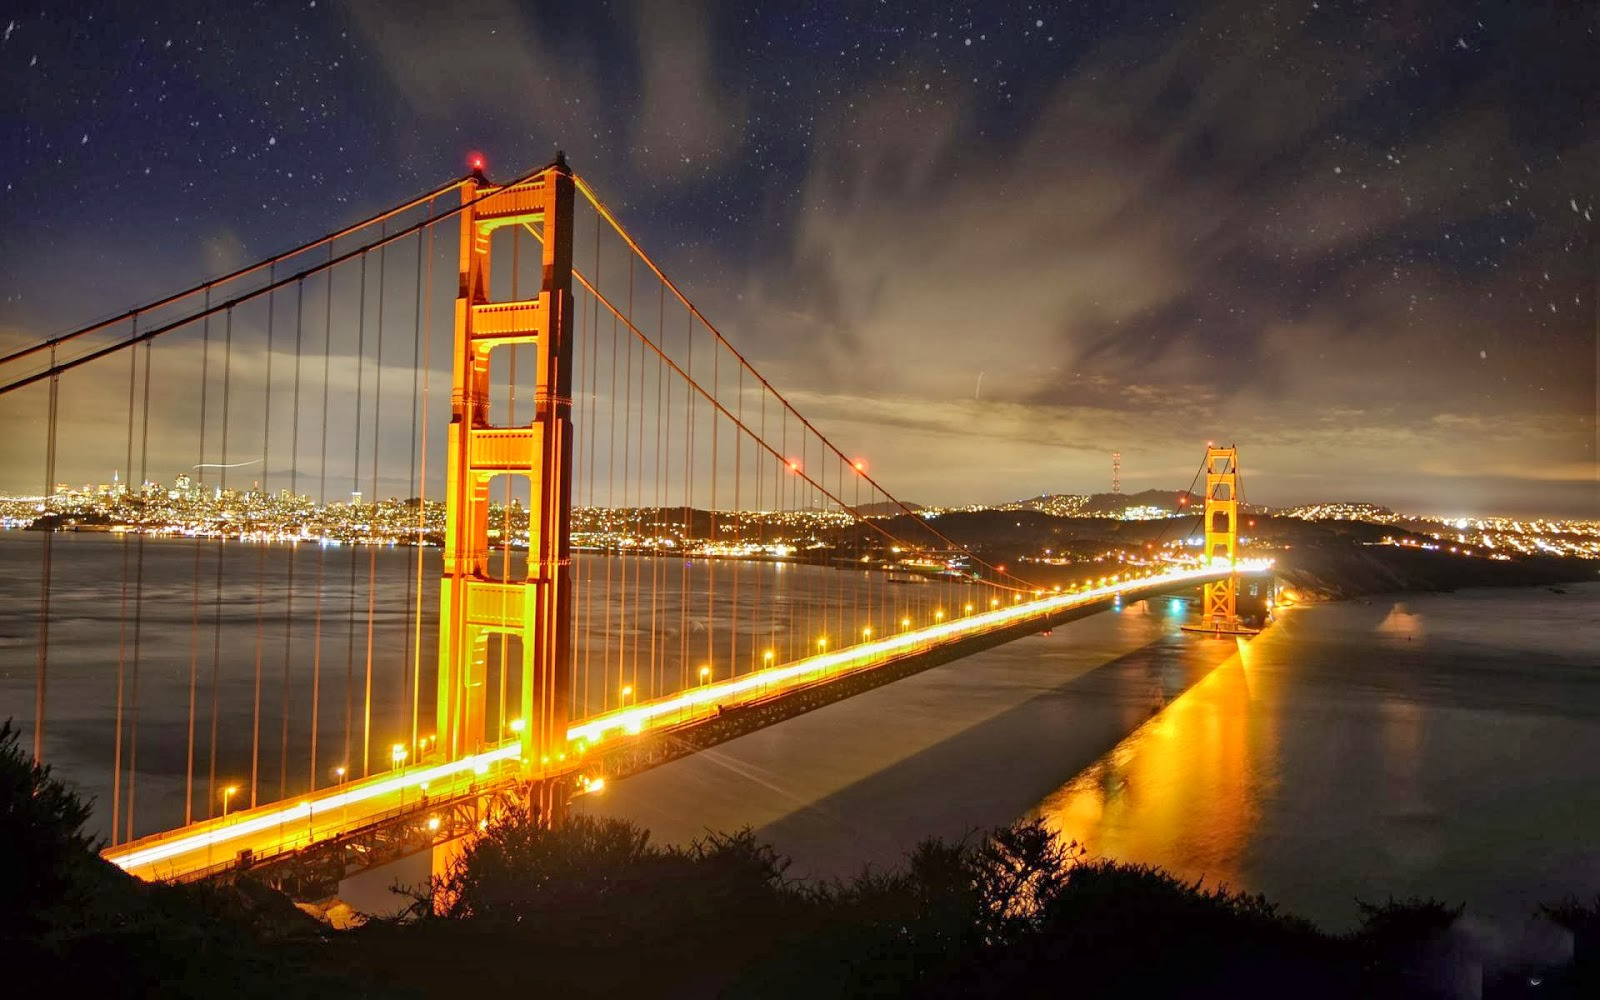 golden gate bridge nights wallpapers - 143 Golden Gate HD Wallpapers Backgrounds Wallpaper